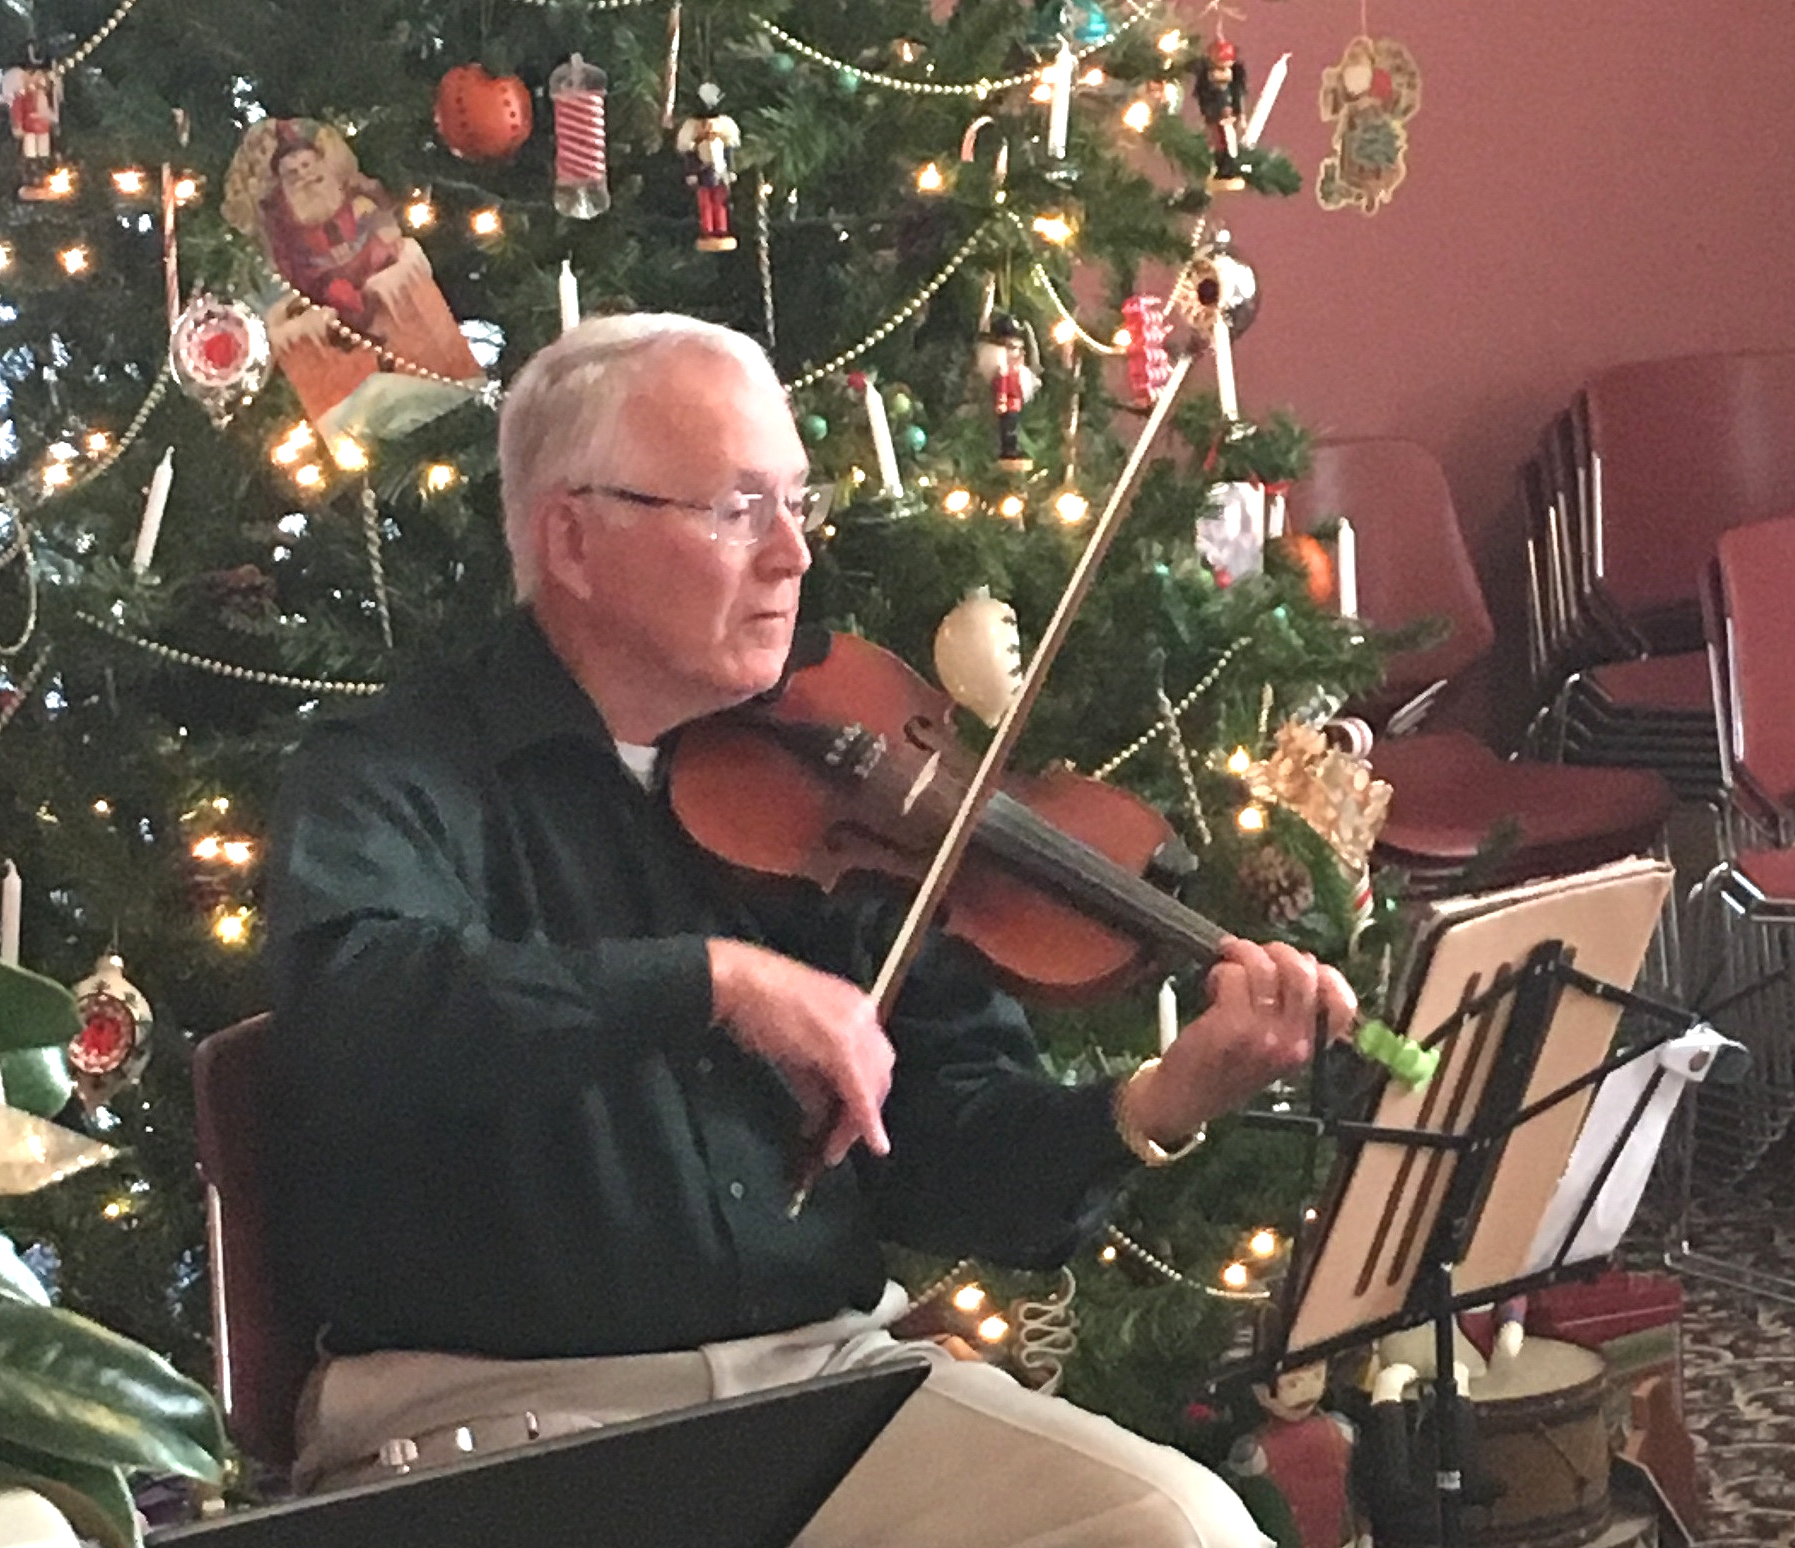 12.2.2017 Marvin playing fiddle closeup Two Rivers.jpg